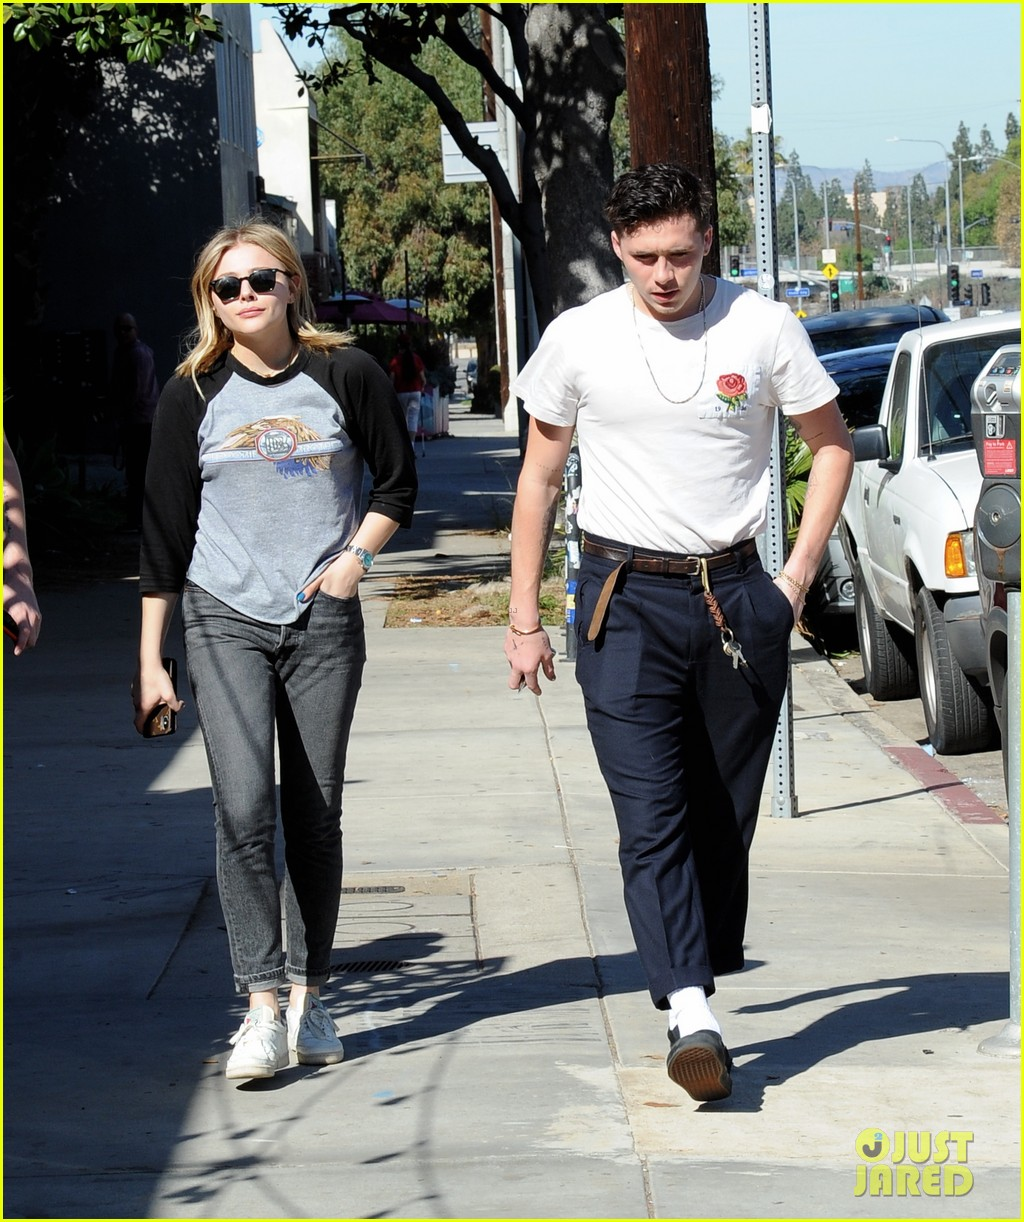 zoe and chloe out to lunch dating